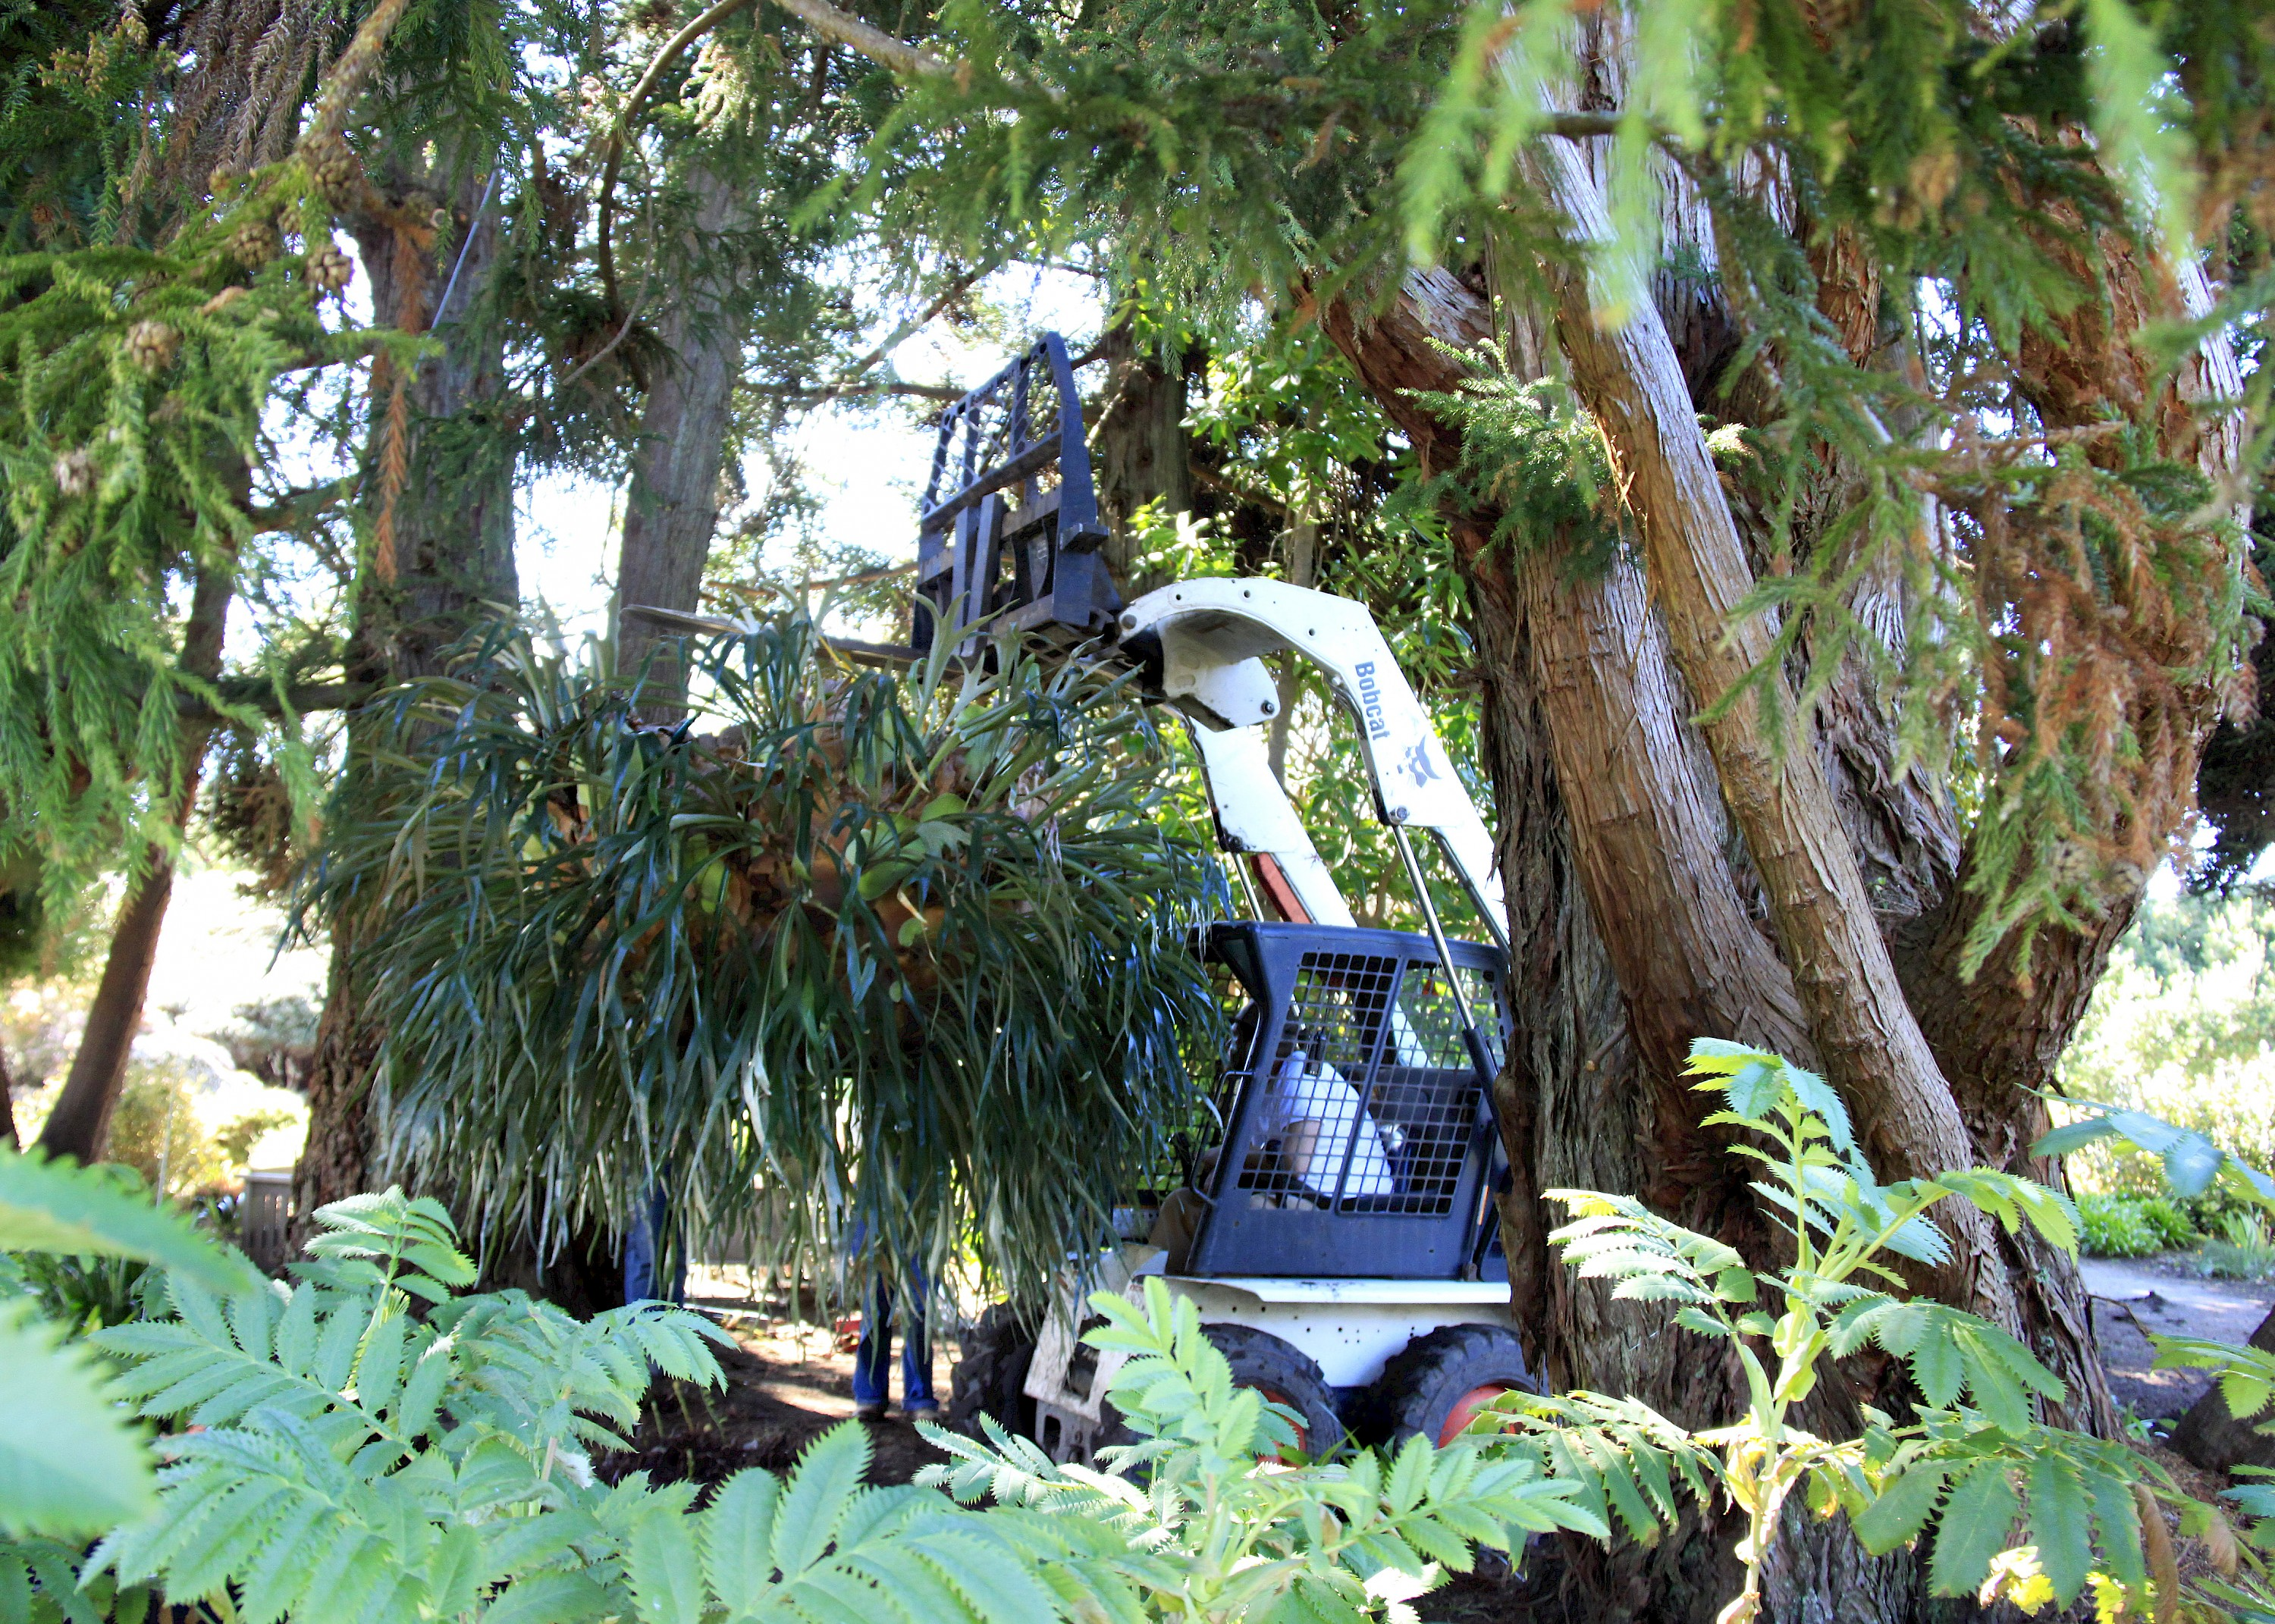 An Unusually Large Award Winning Epiphytic Fern Has Found A New Home At The  Western Edge Of The Perennial Garden! The Plant Is A 50+ Year Old Staghorn  Fern ...